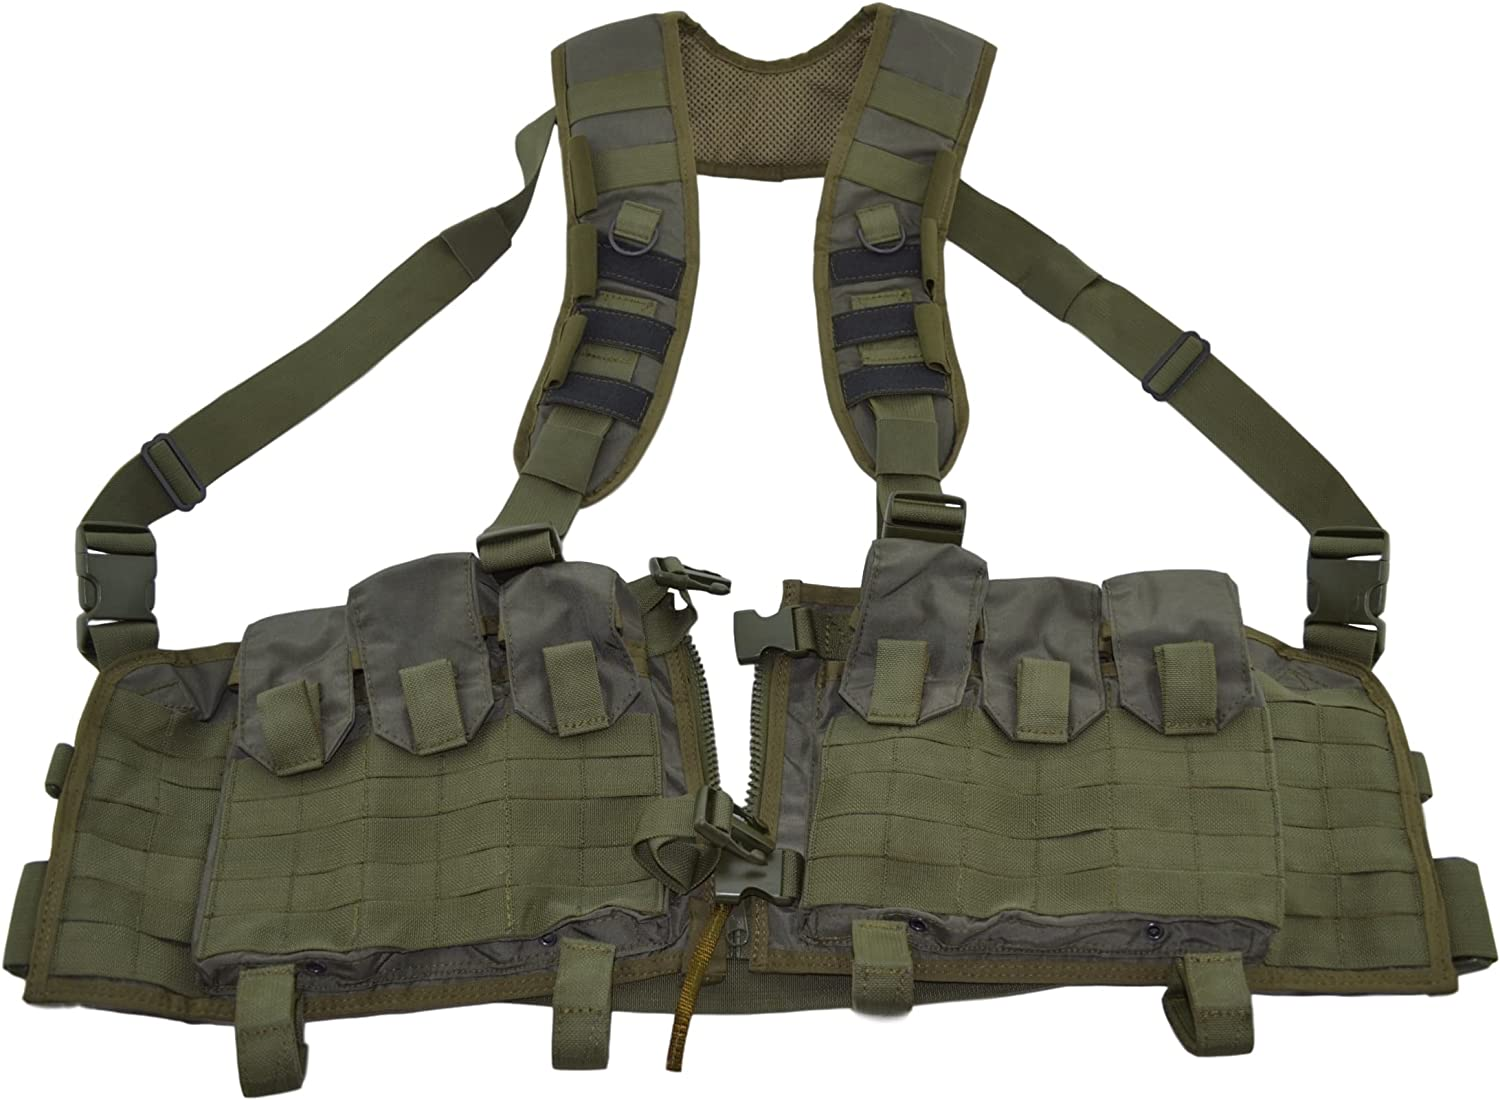 SSO Tactical Vest Nooker Russian Scout Chest Rig by SPOSN